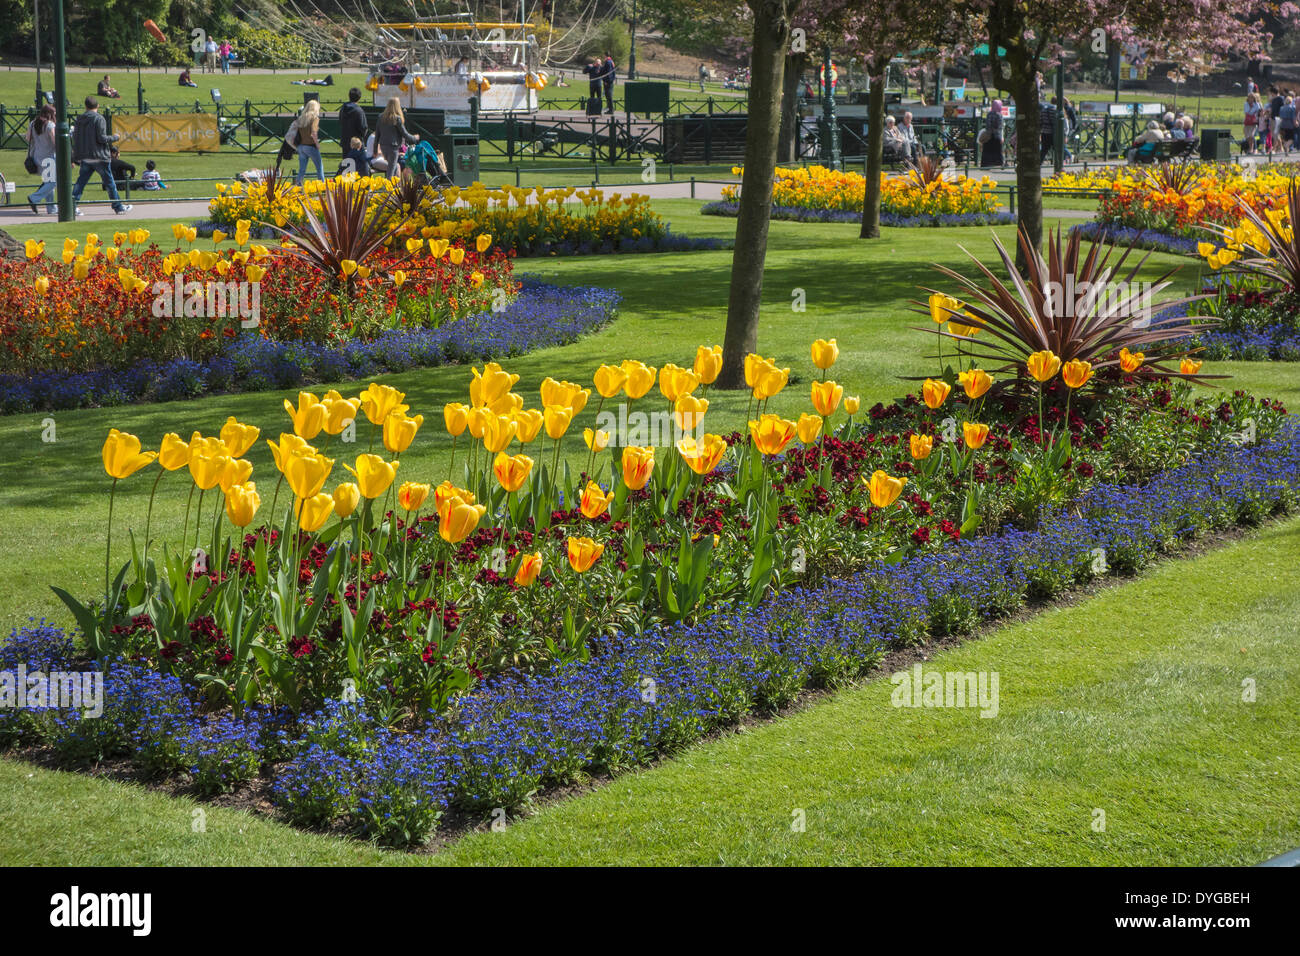 Flower Beds in Bournemouth Gardens at Easter weekend, Dorset, England, UK - Stock Image